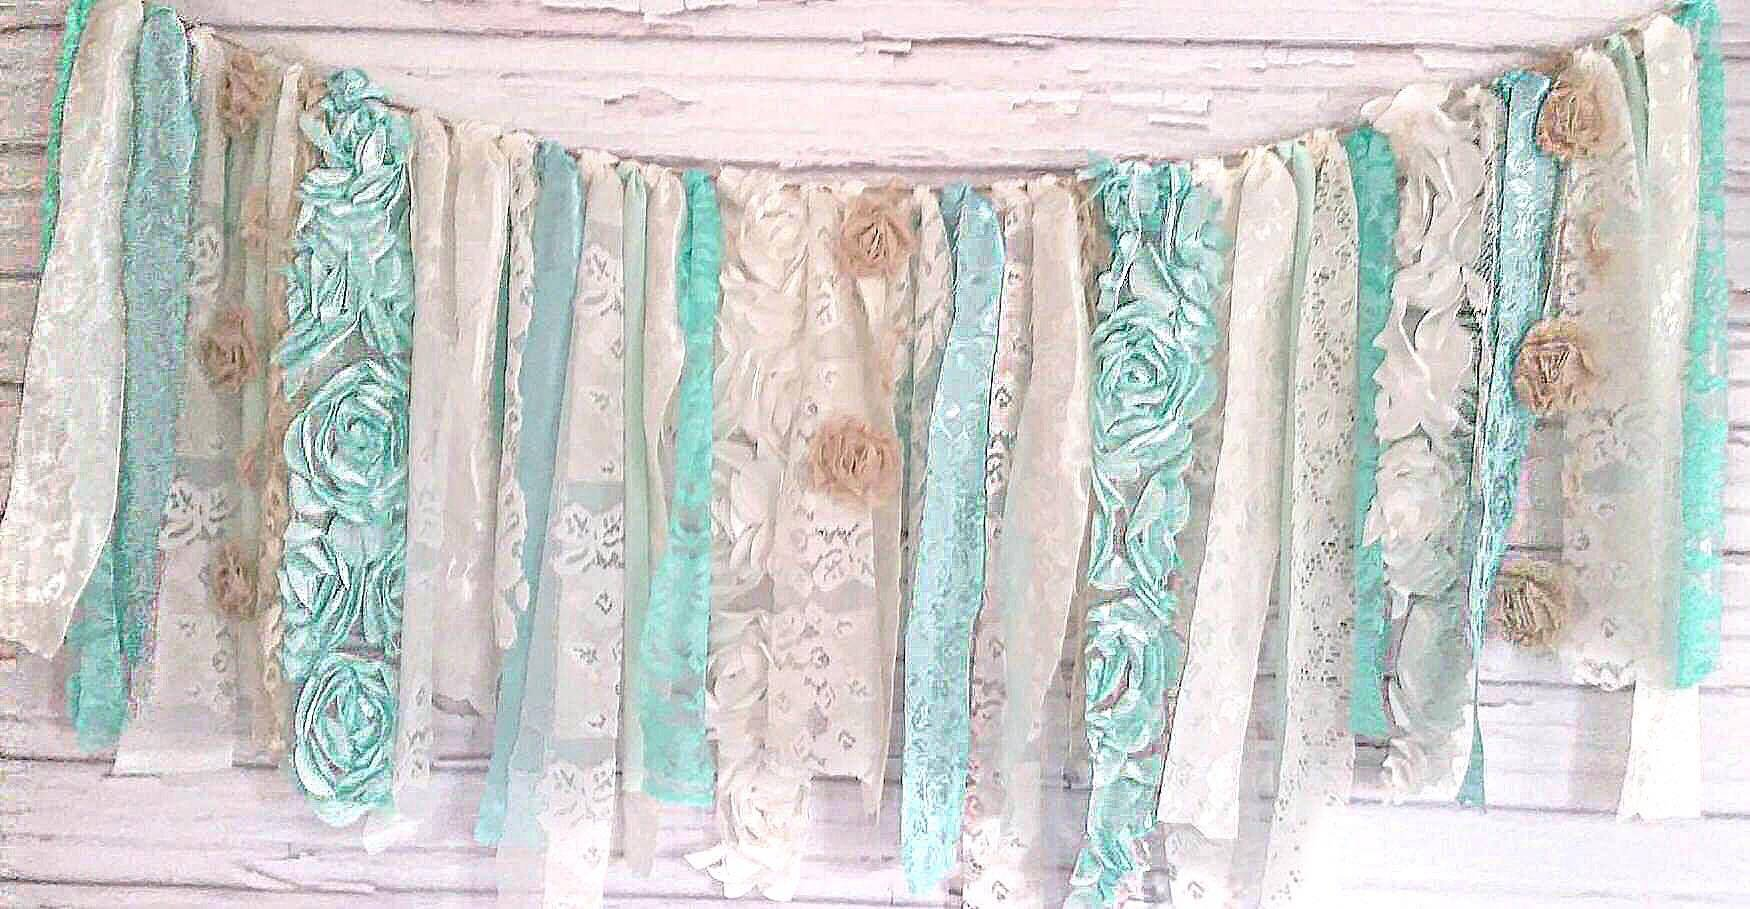 Mint Shabby Chic Garland Rag Tie Banner: ~ Photo Shoot ~ Vintage ~ Wedding Decor ~ Nursery ~ Bridal Shower ~ Gender Reveal Parties ~ Decorations ~ Photo Props ~ Banner ~ Wall Decor!  (4 FEET WIDE)